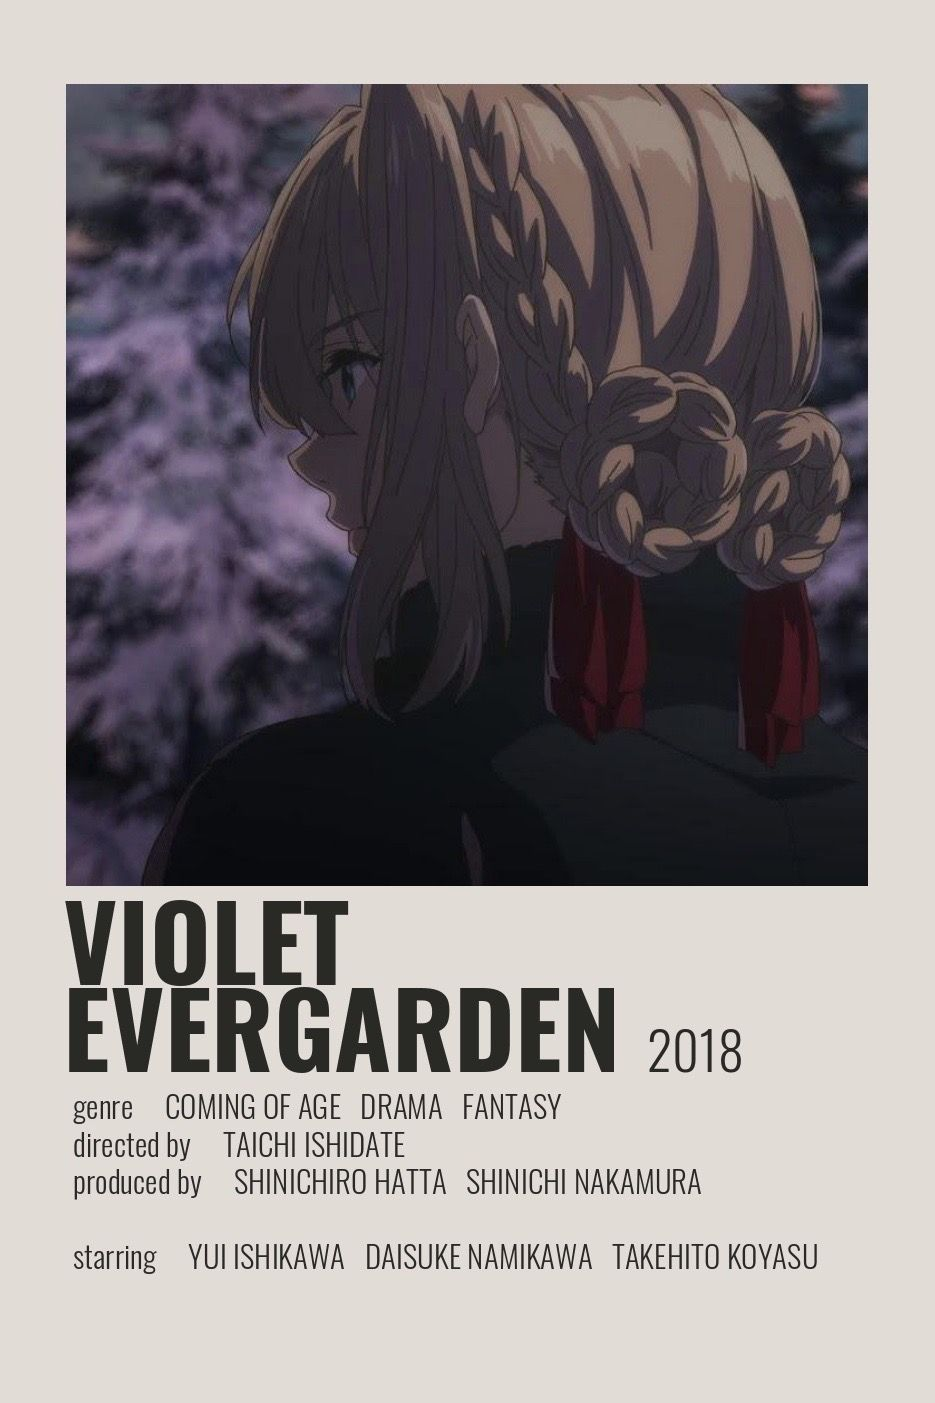 Violet Evergarden Poster by Cindy in 2020 Film posters